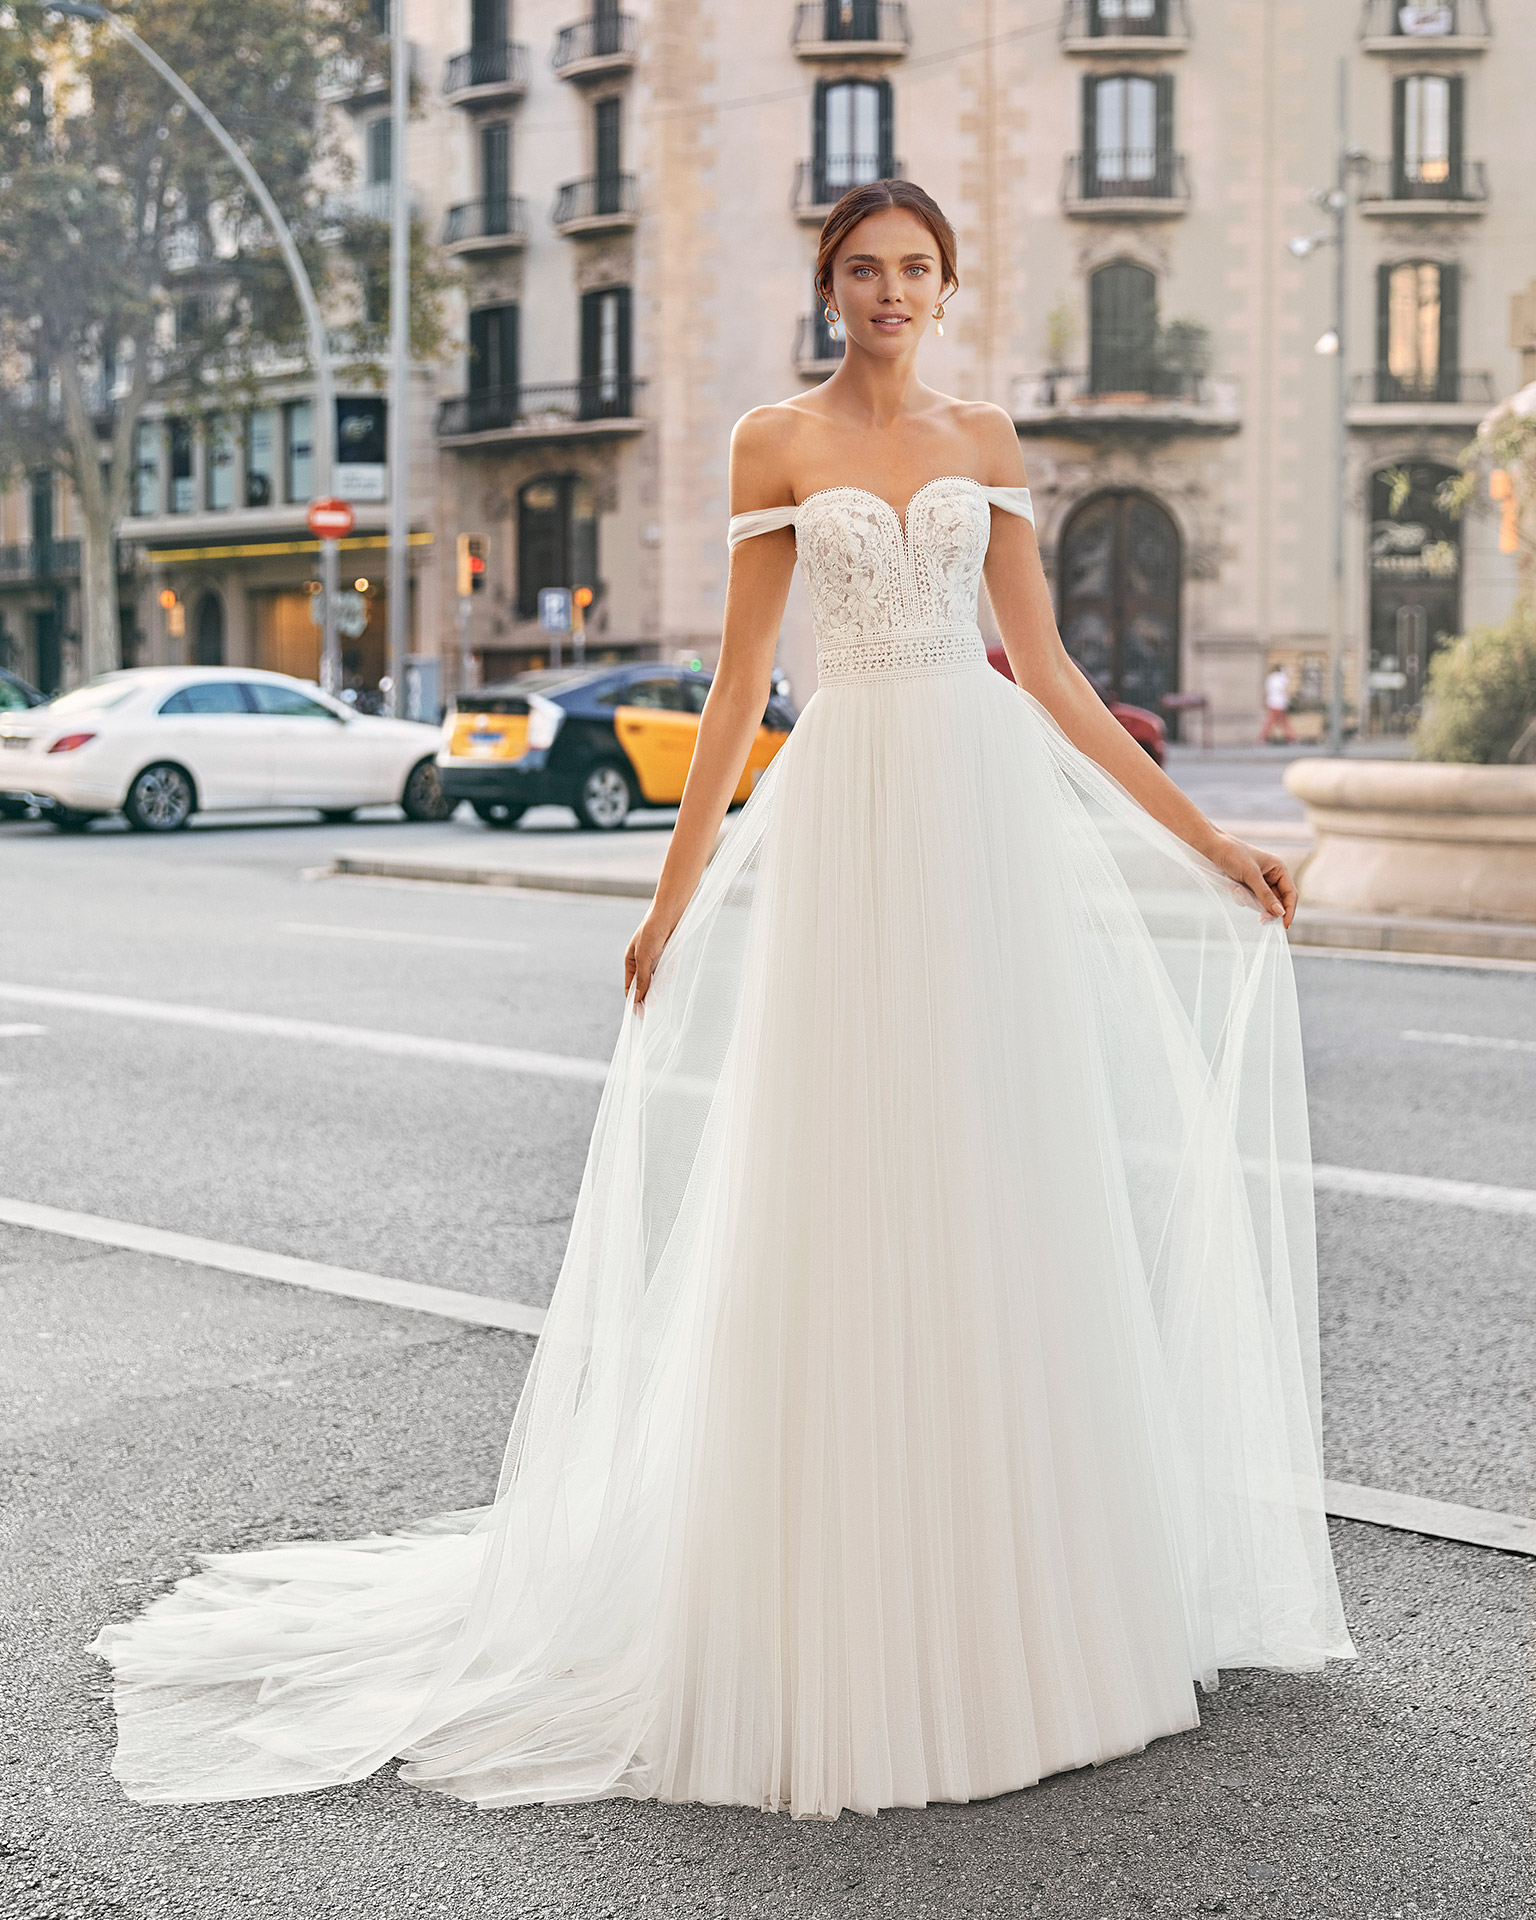 Sheath-style wedding dress in soft tulle and beaded lace. Sweetheart neckline with off-the-shoulder straps. 2021  Collection.